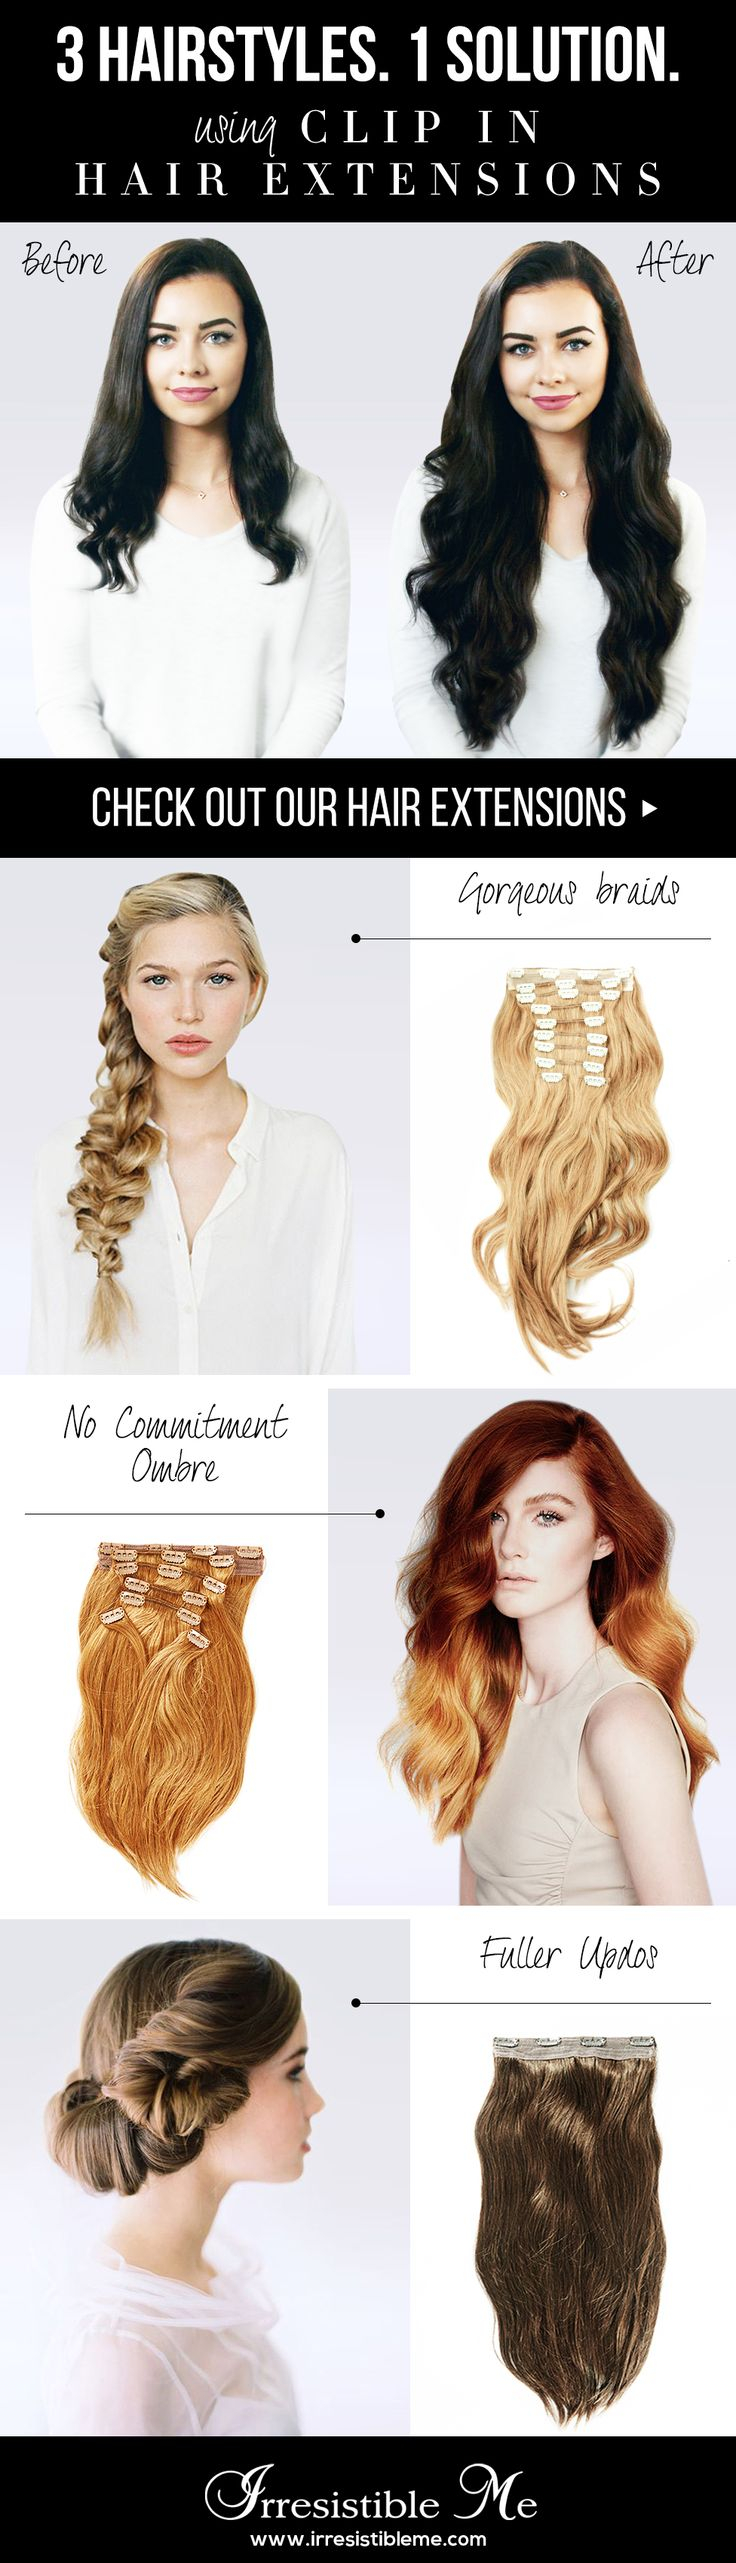 Add Length And Volume In Just Minutes With Irresistible Me 100 Human Remy Clip Hair Extensions Try Any Hairstyle You Want Without Damage To Your